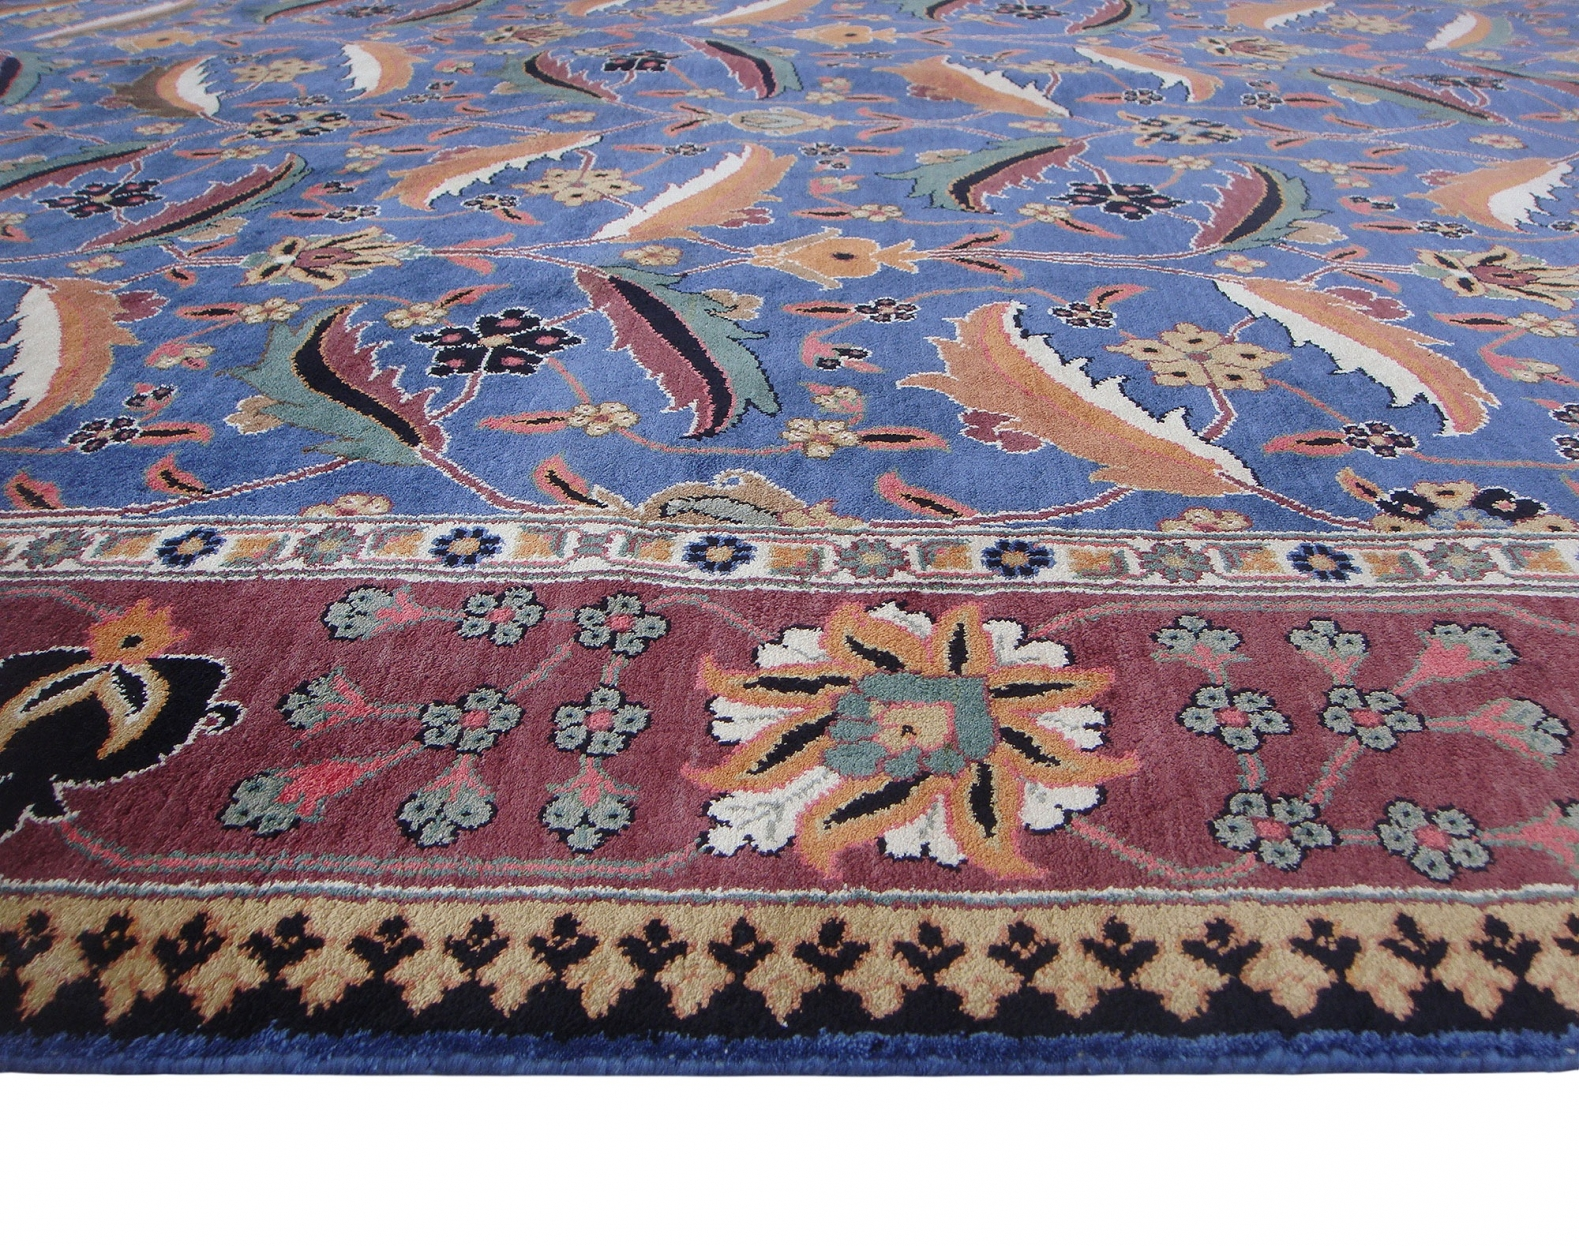 Kirman Vase silk pile carpet